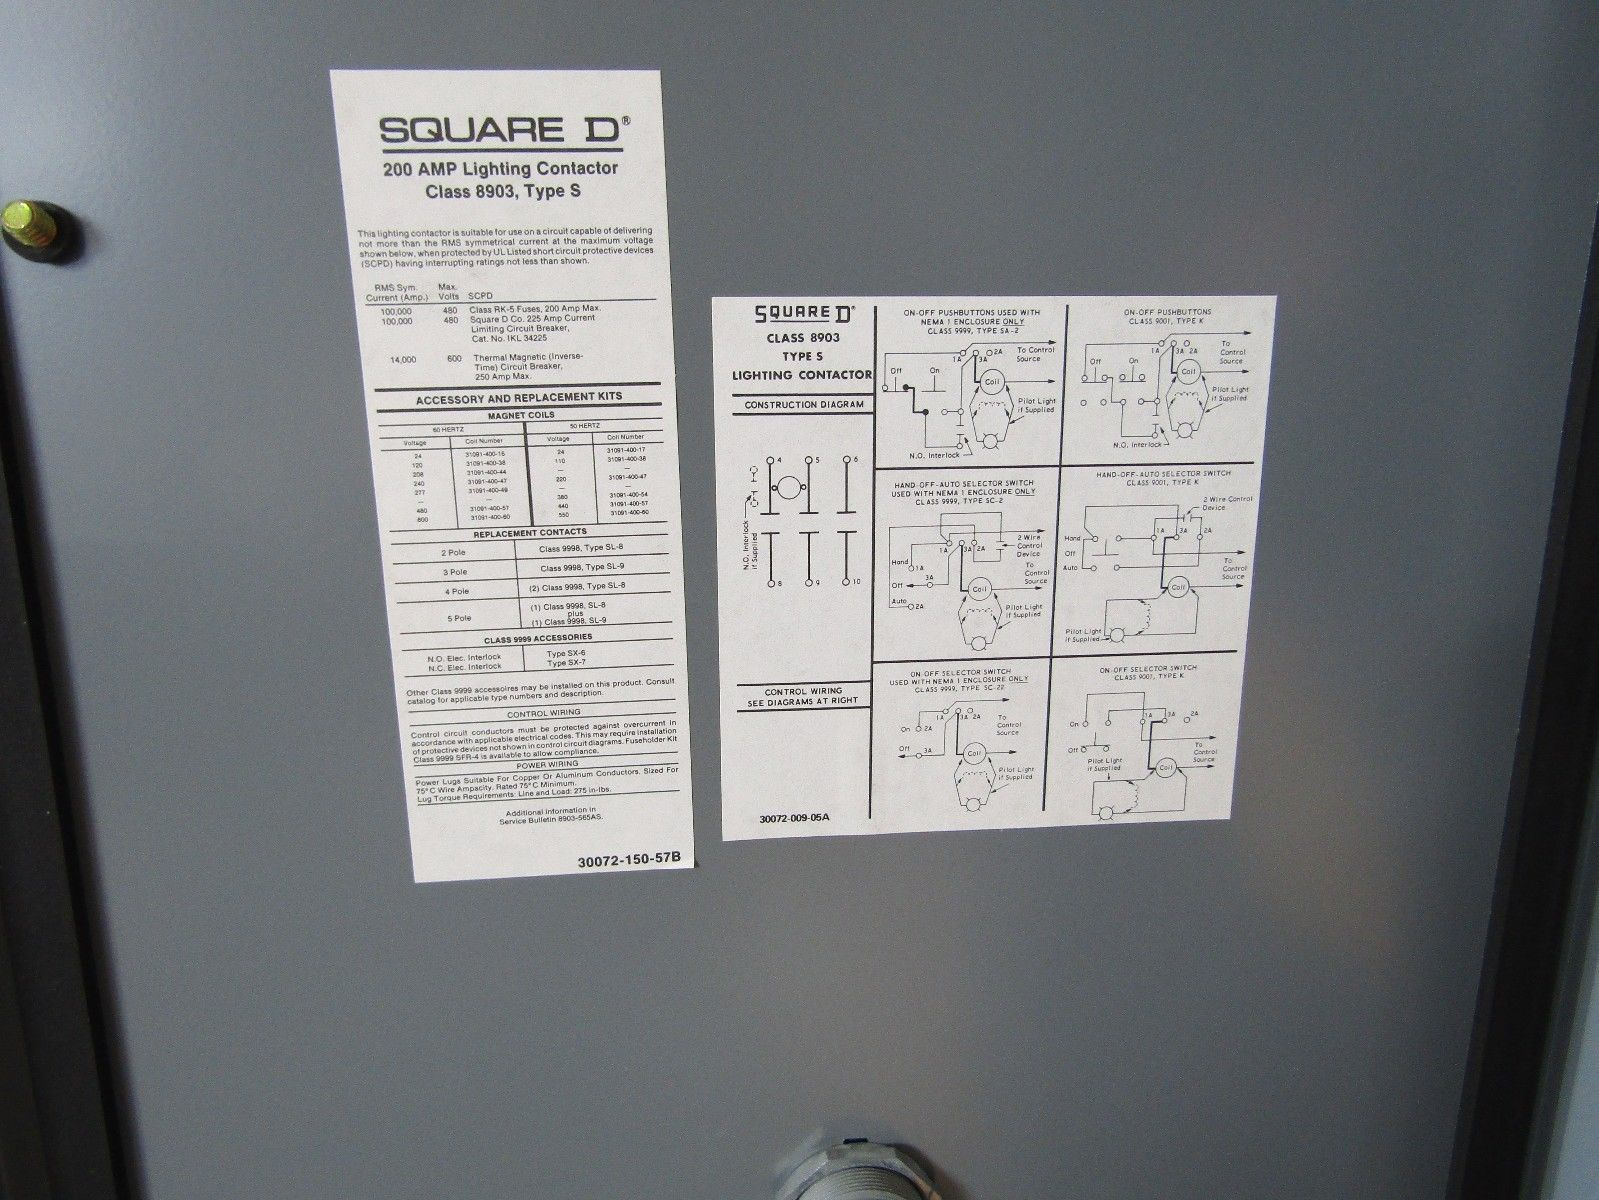 Fine 3 Pole Lighting Contactor Wiring Diagram Ideas - Electrical and ...